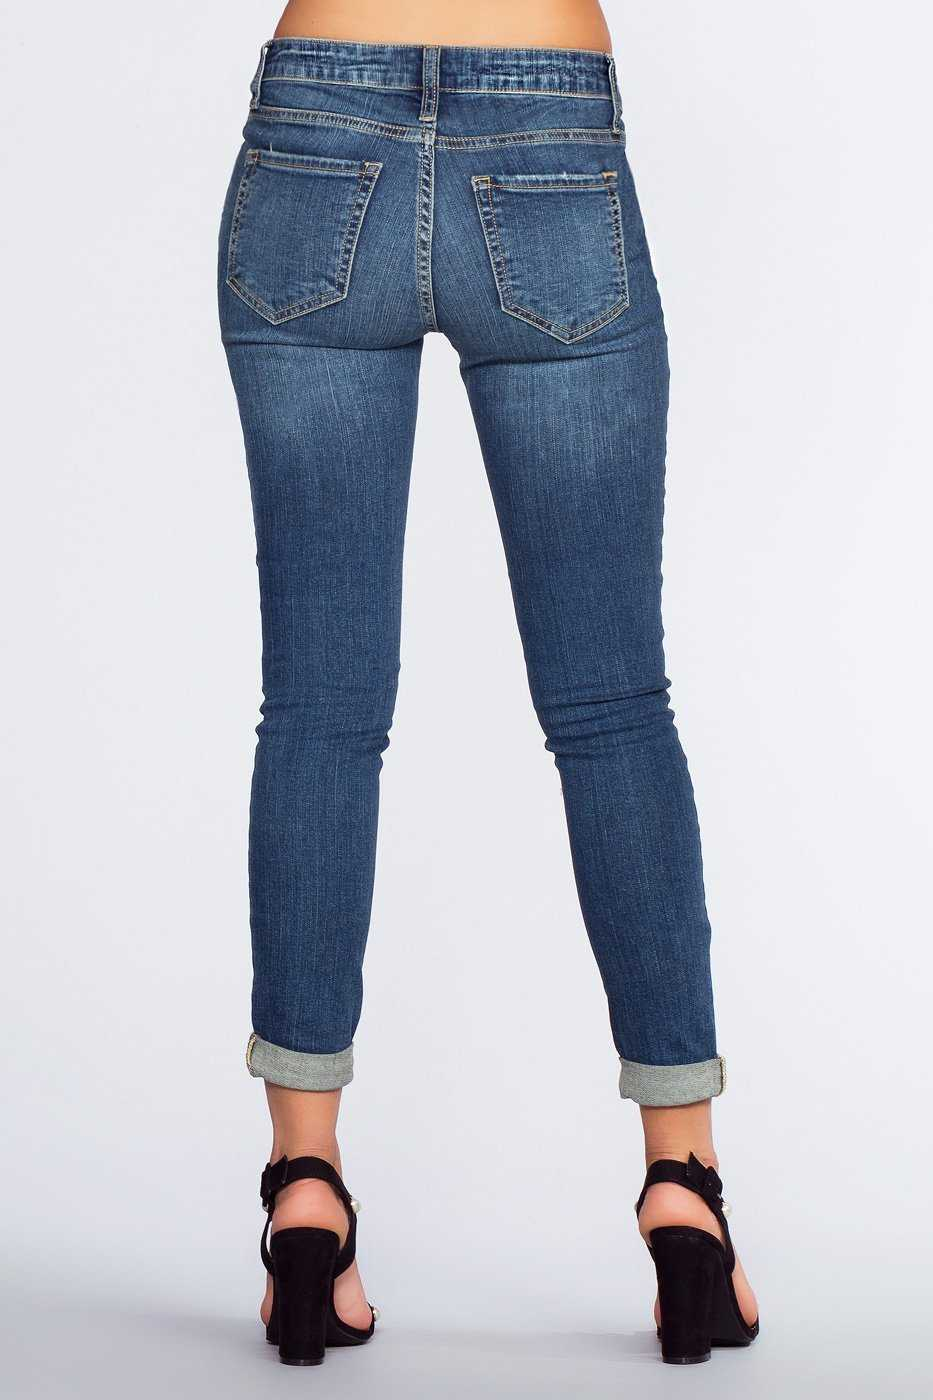 Pants - Harvard Cuffed Jeans